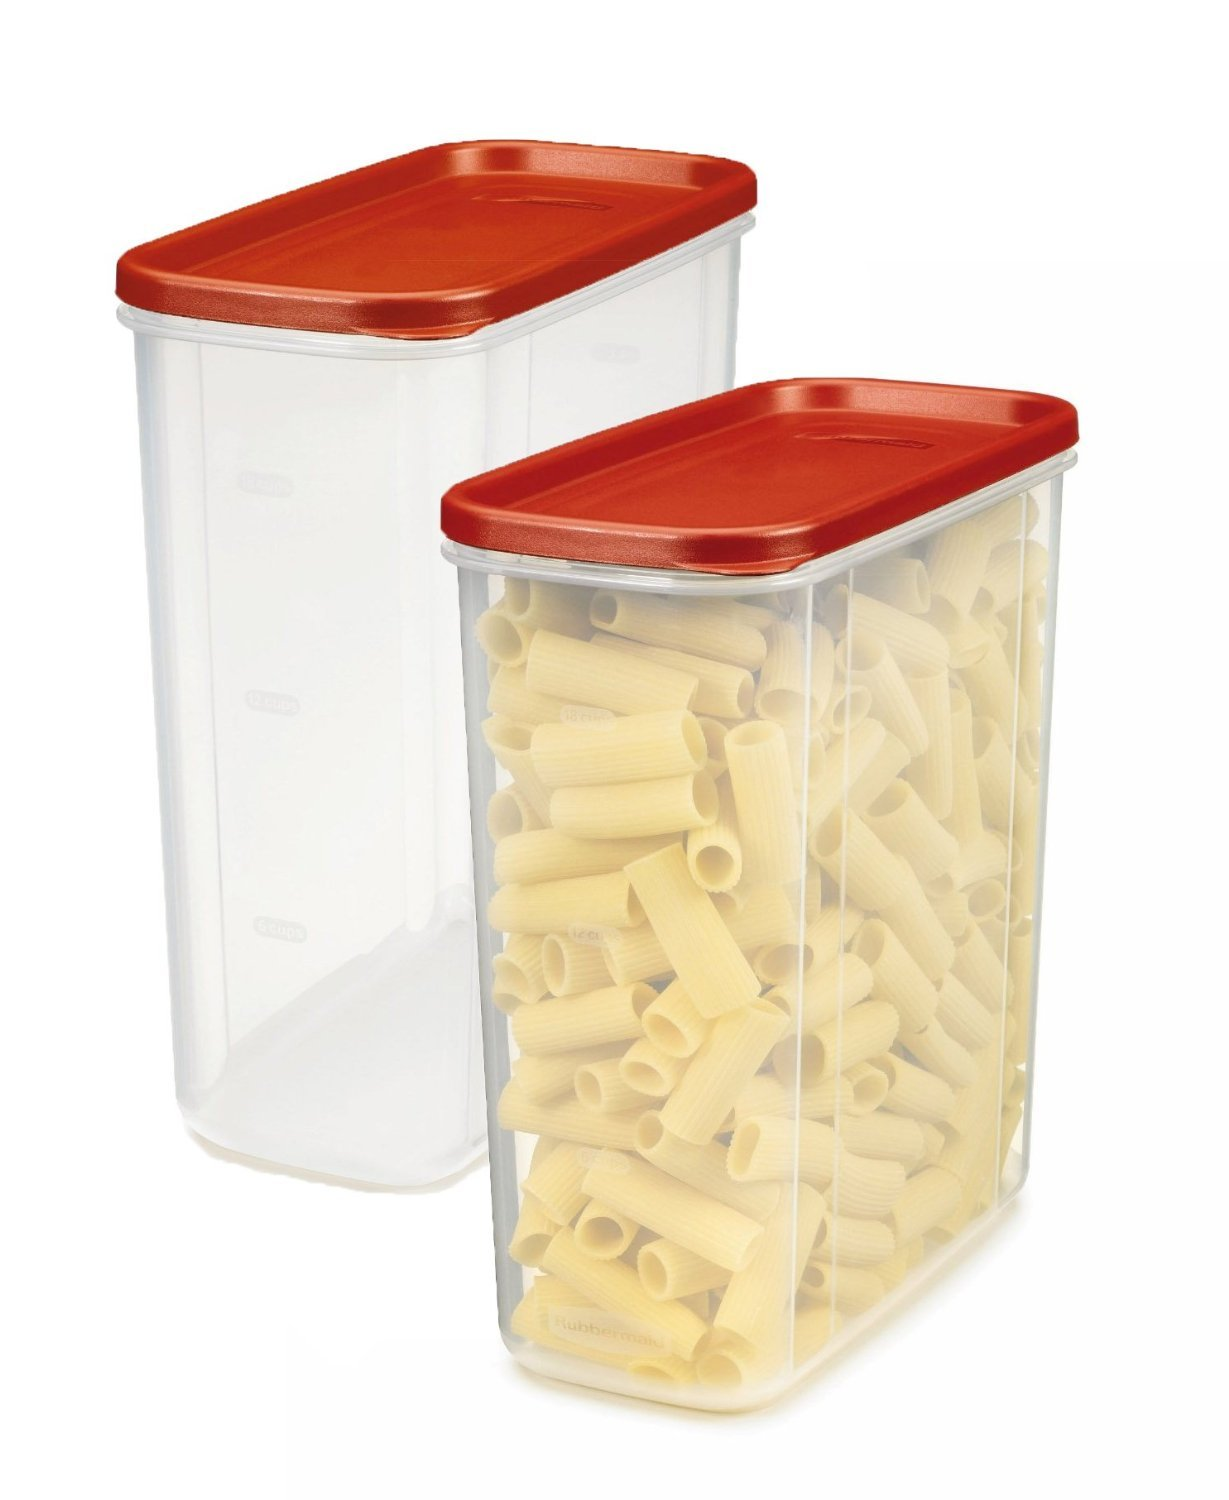 Rubbermaid LEPUSEMTE469 711717429496 Dry Food Container (Set of 2), 21-Cup, 2 Pack Everyday, Clear